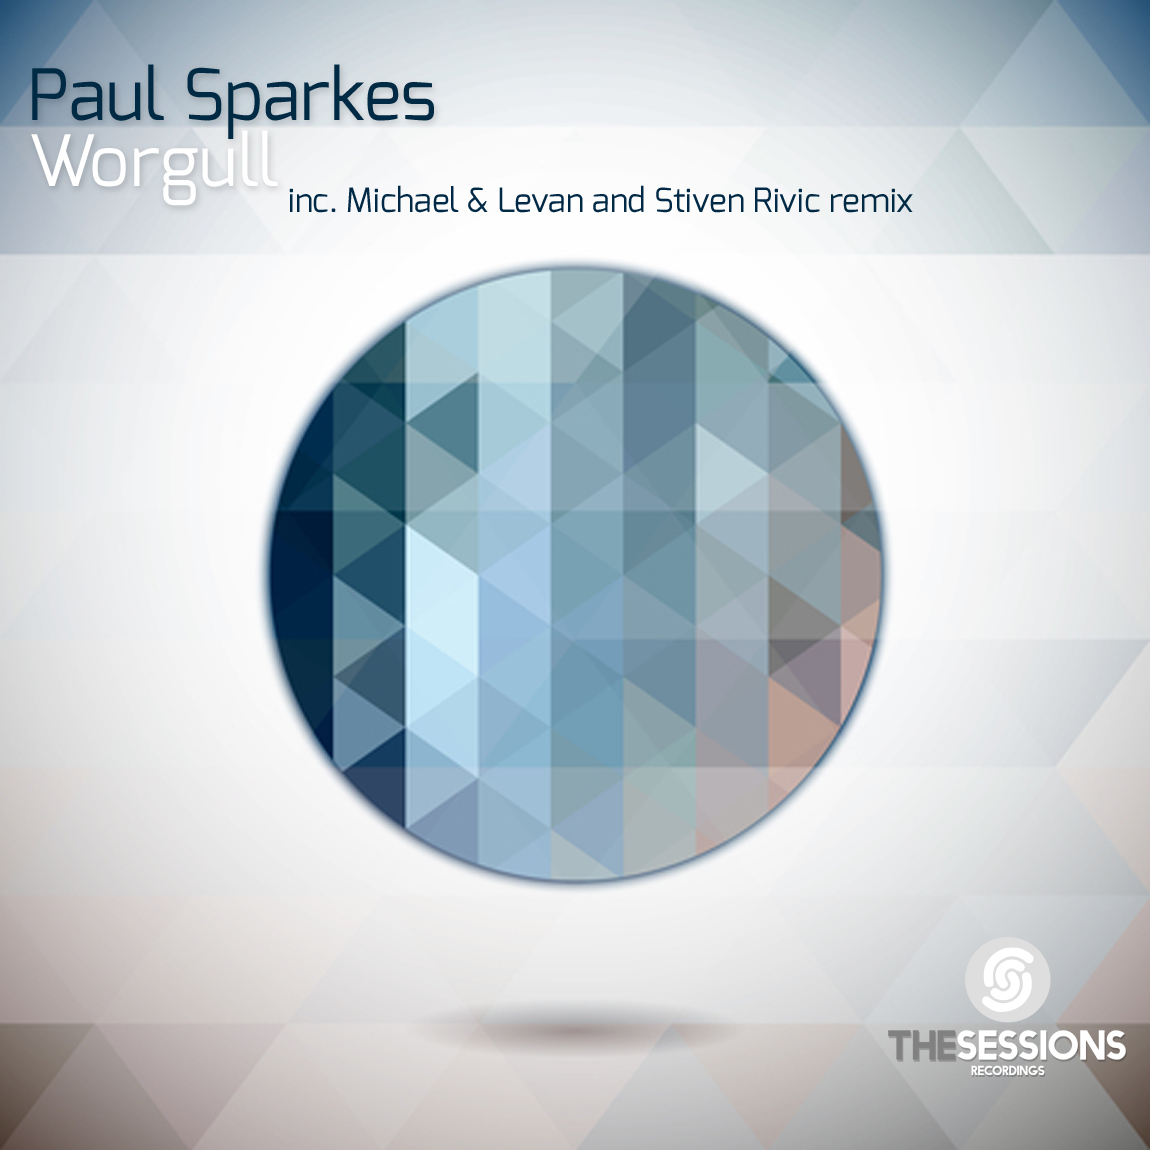 Paul Sparkes - Worgull (The Sessions Recordings)